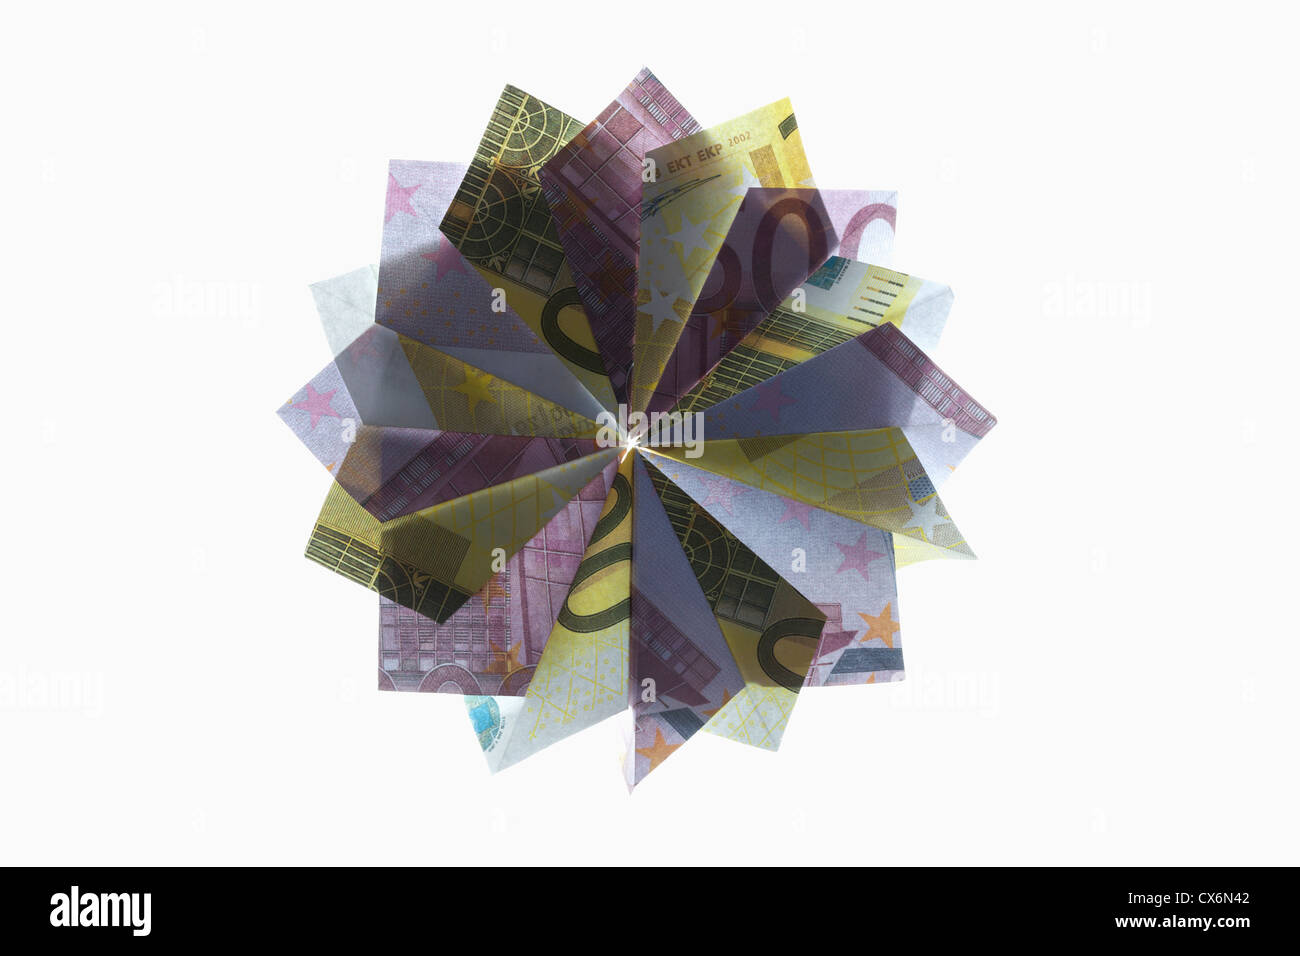 Five hundred Euro bills and two hundred Euro bills folded into a pinwheel shape - Stock Image